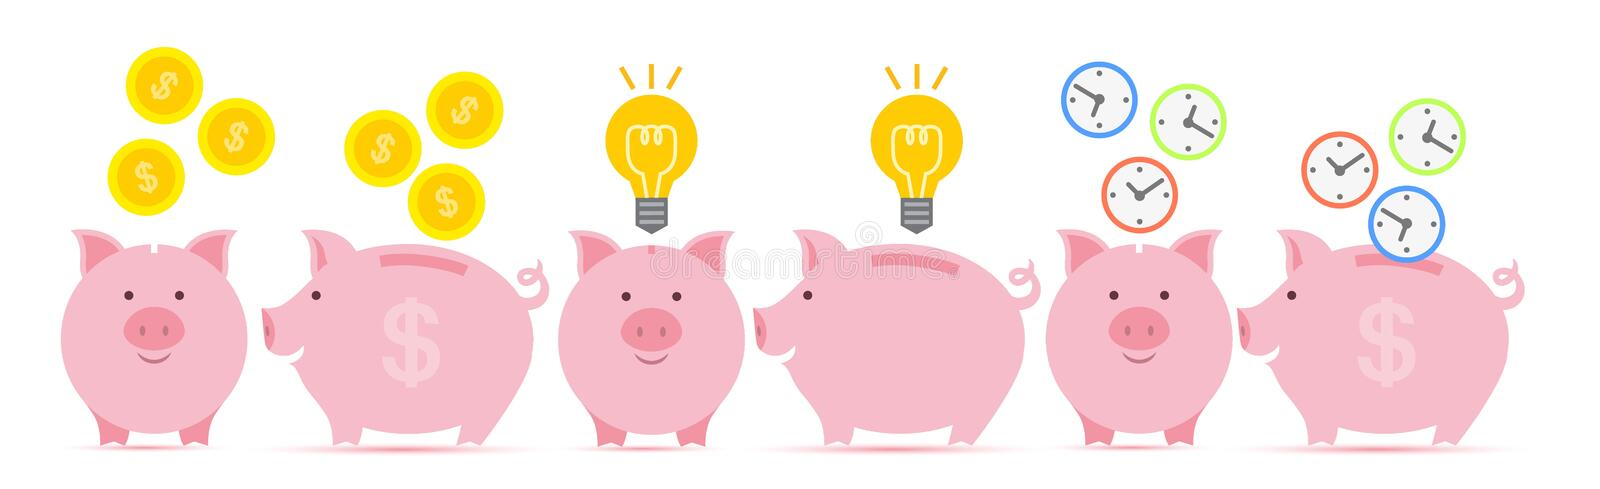 Piggy bank with coins. stock illustration